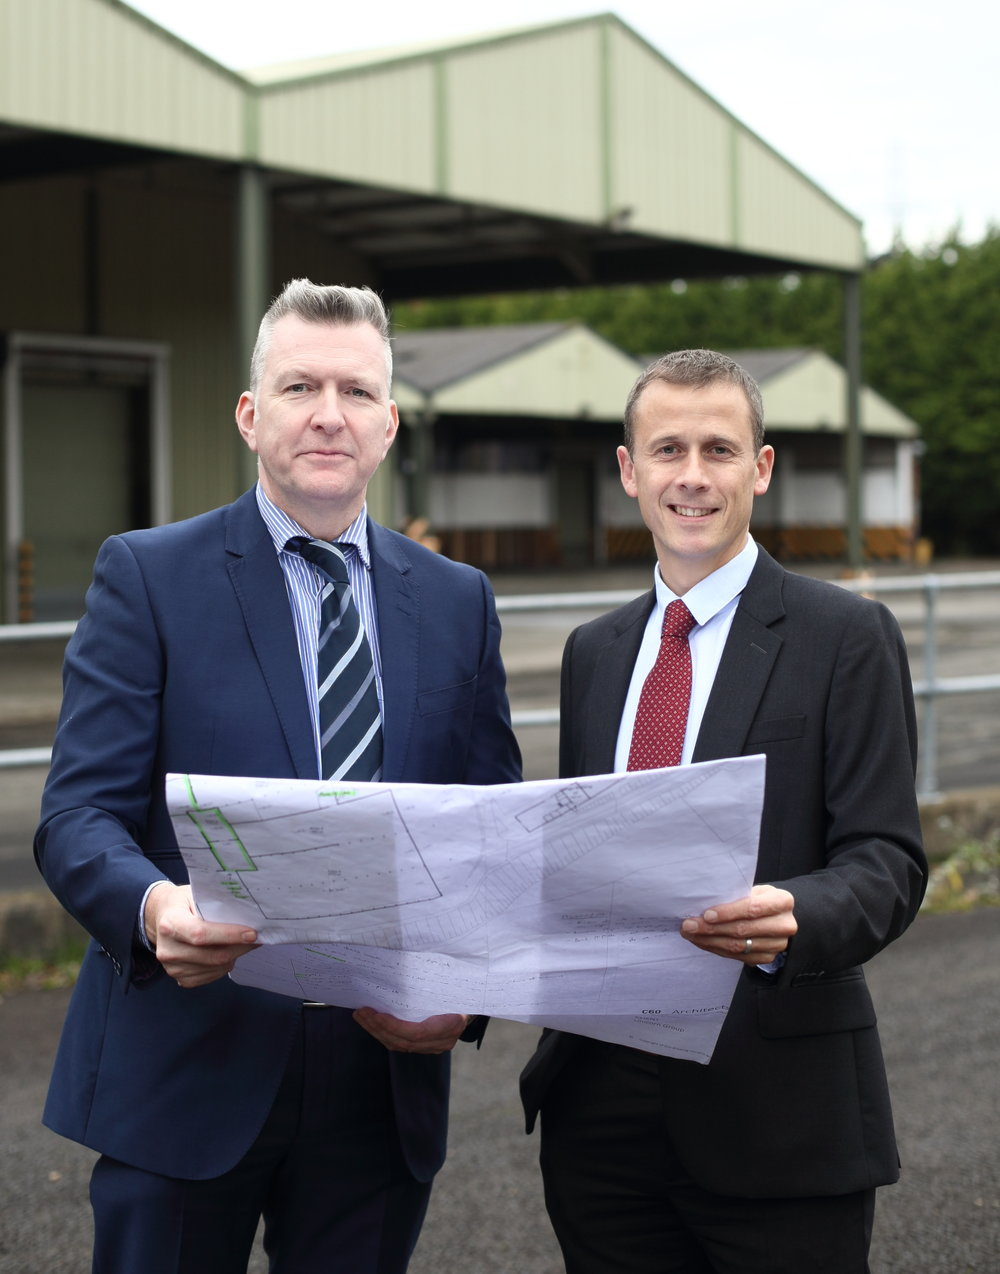 Pictured at the site of the former Coke plant in Lisburn is Mark Robinson, Group Commercial Director and Roger Pannell, Managing Director of Unicorn Group who have purchased the site in a multi-million pound deal.